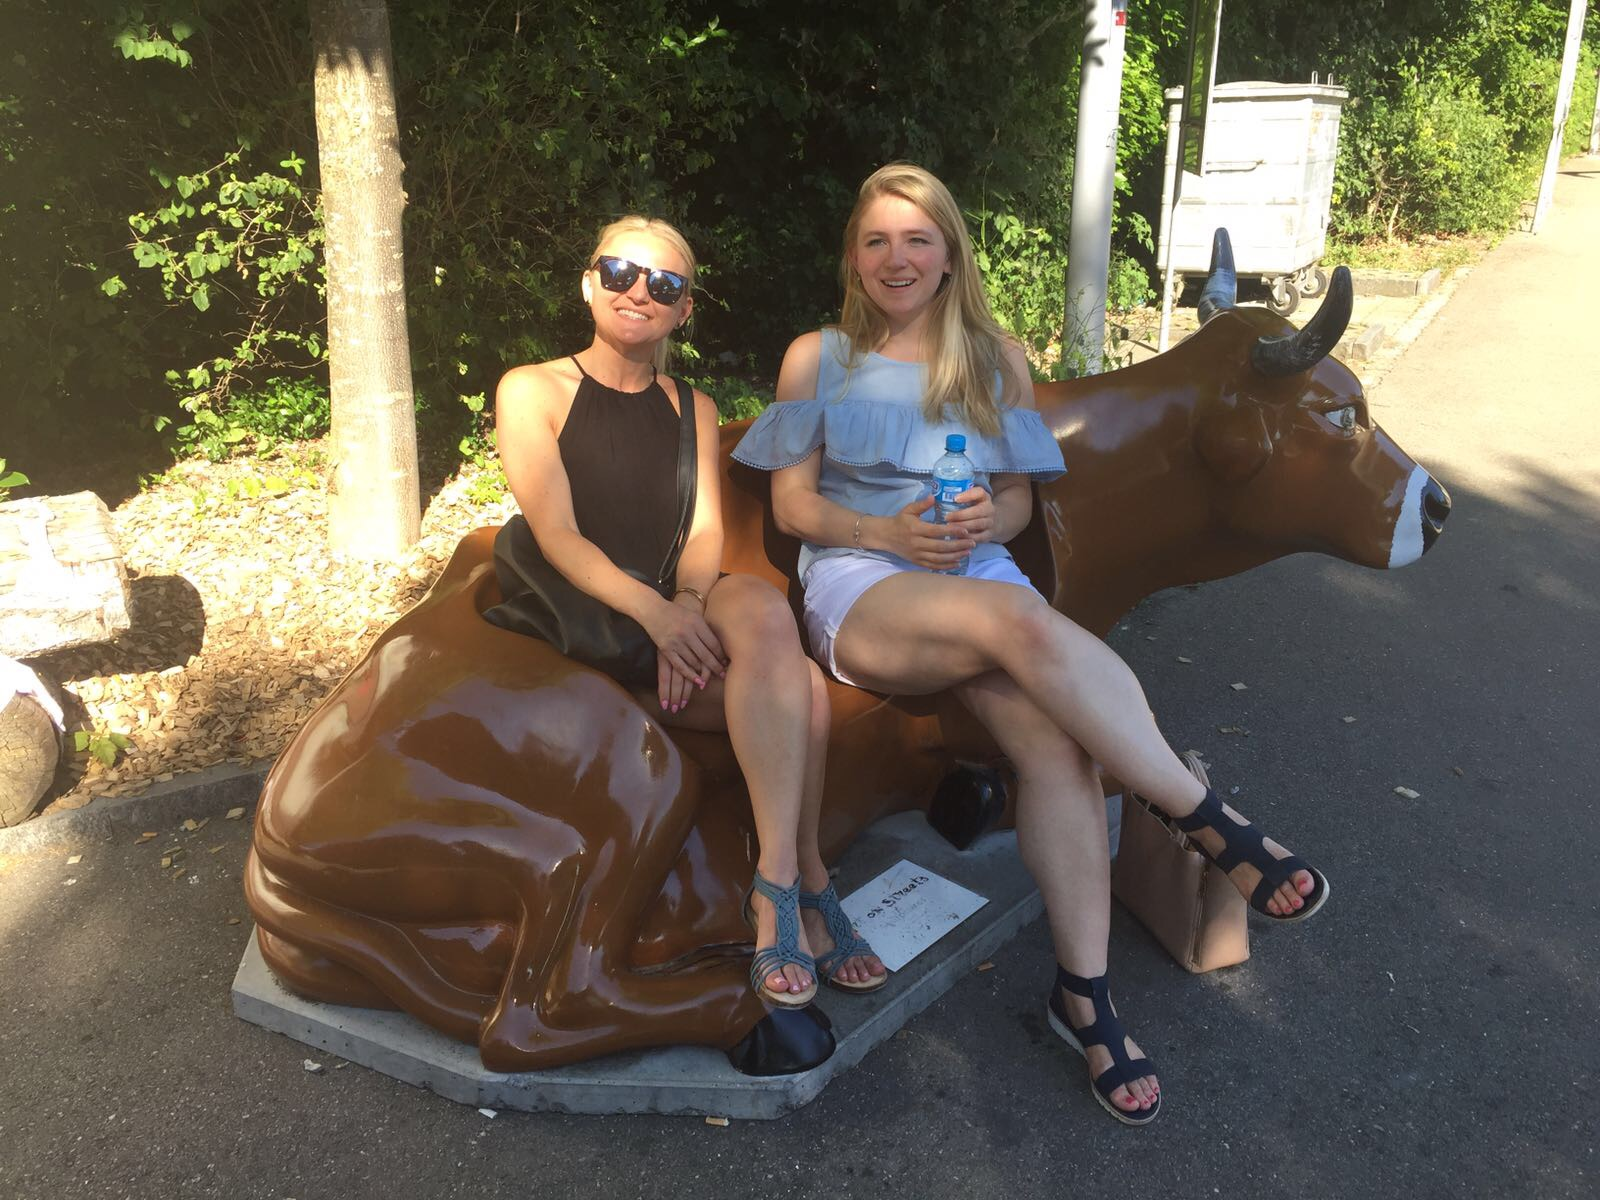 It seemed appropriate to take a break on a cow :)